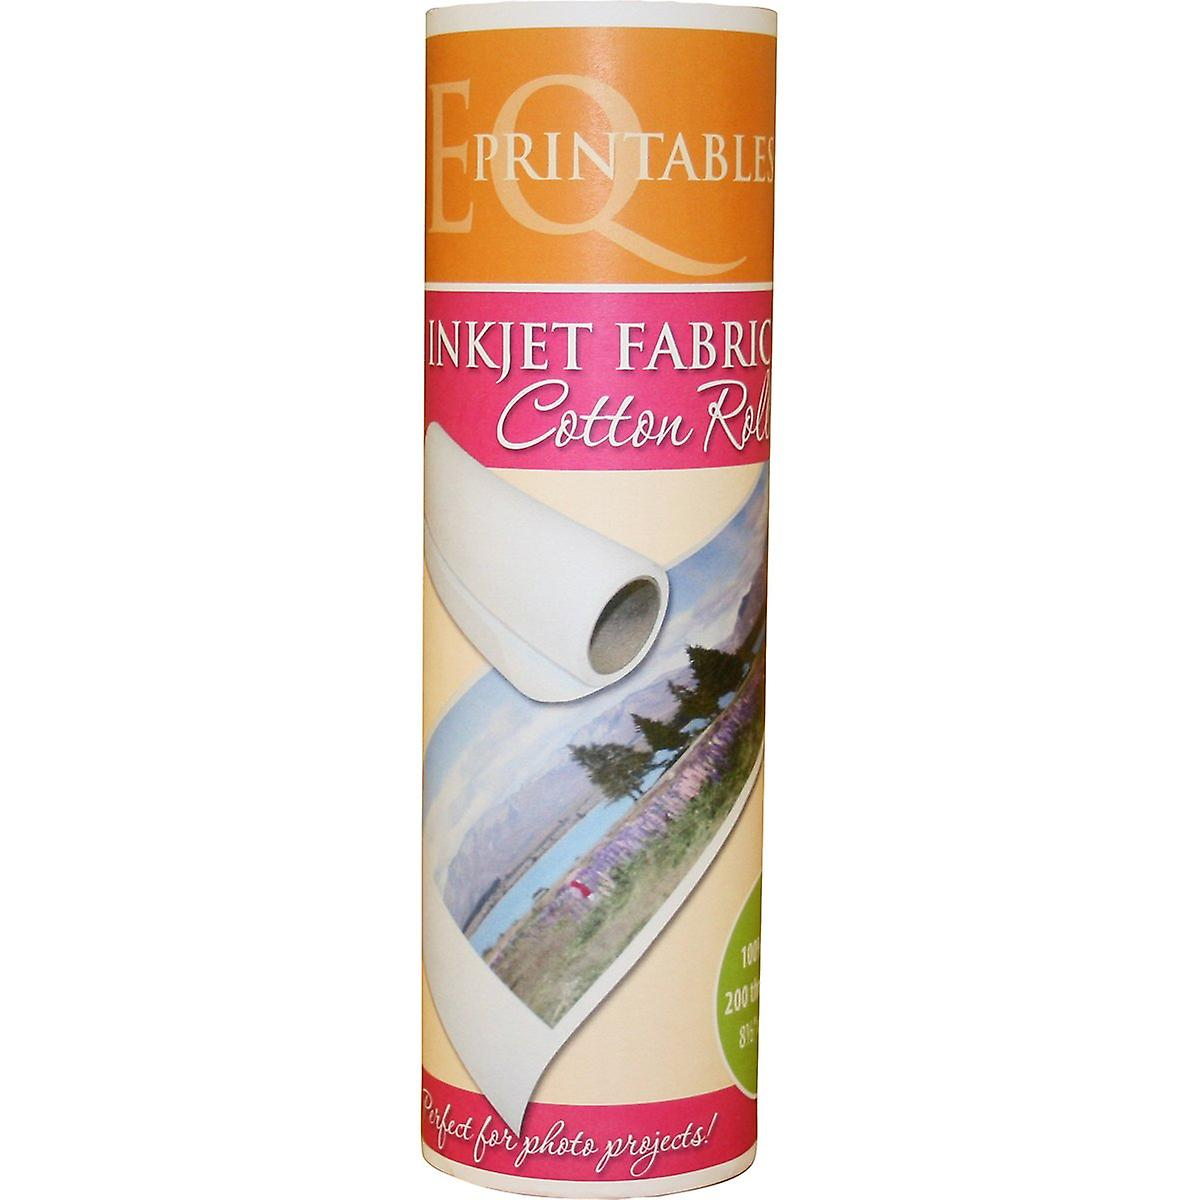 photo relating to Inkjet Printable Fabric called Inkjet Printable Cloth Upon A Roll 8.5